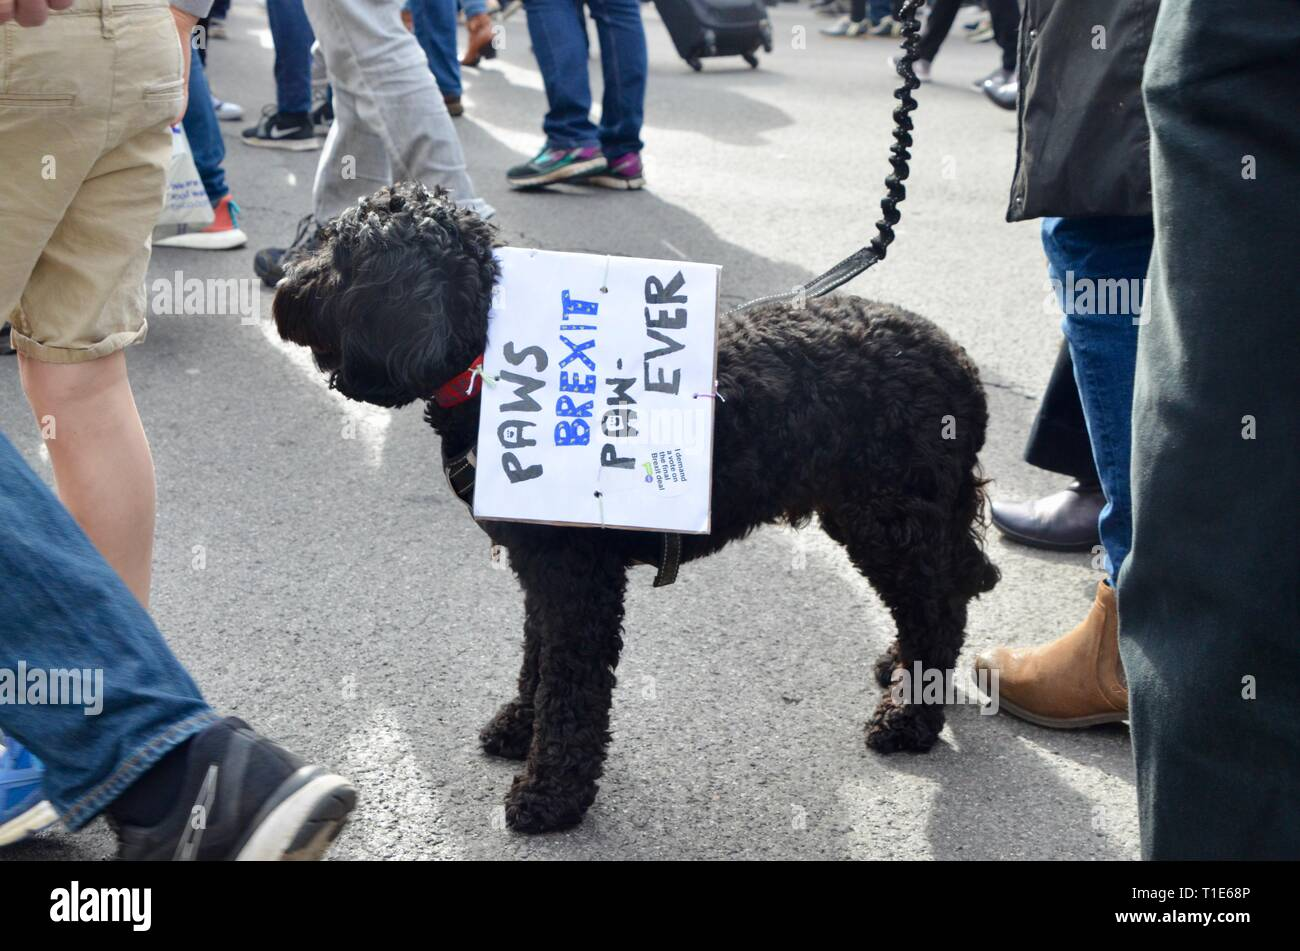 scenes from the anti brexit pro peoples vote march in london 23rd march 2019 paws brexit paw ever dog - Stock Image